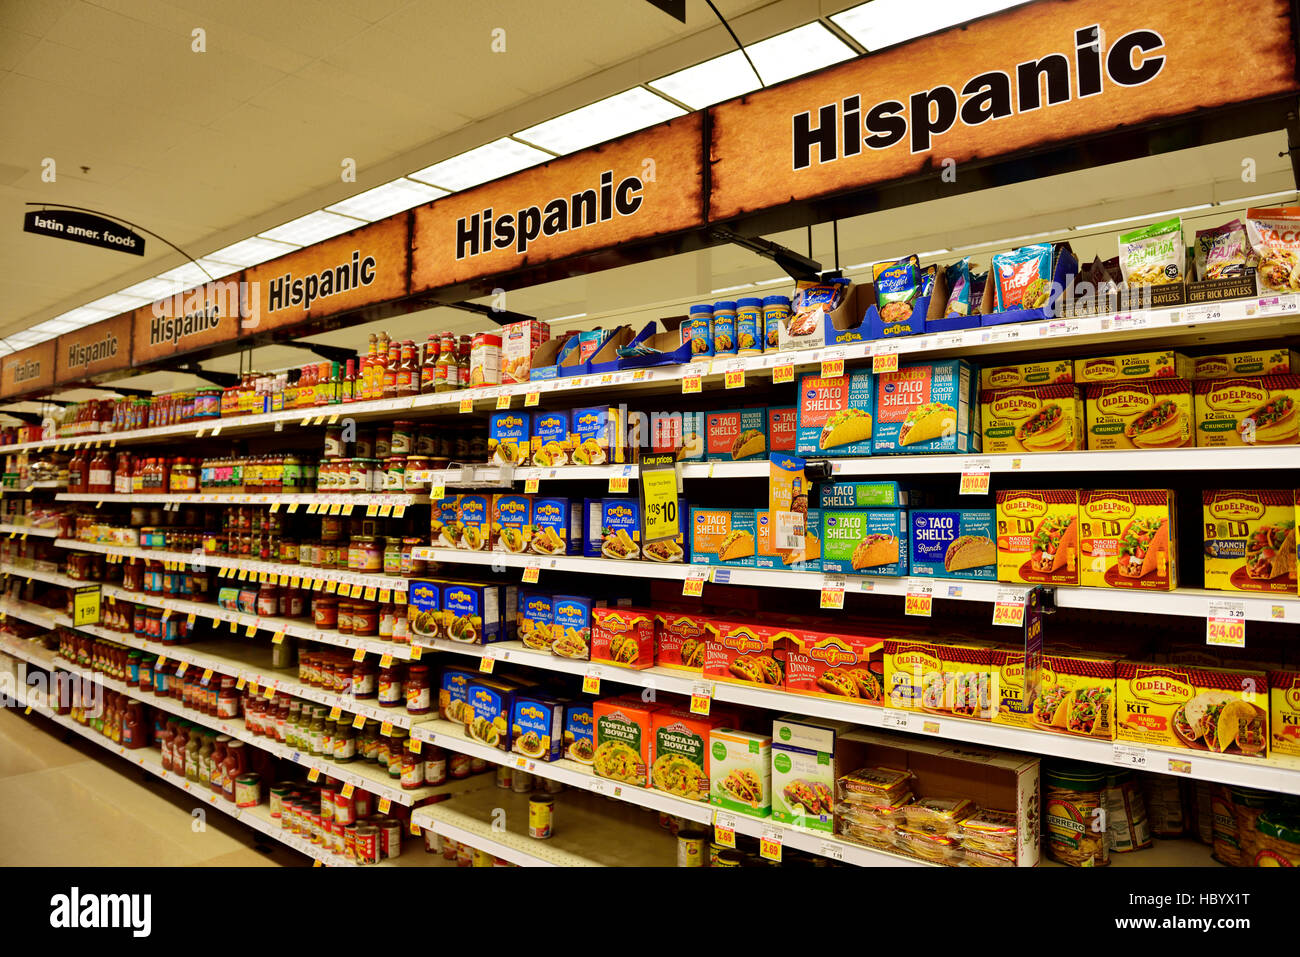 Mexican Supermarket Stock Photos & Mexican Supermarket Stock